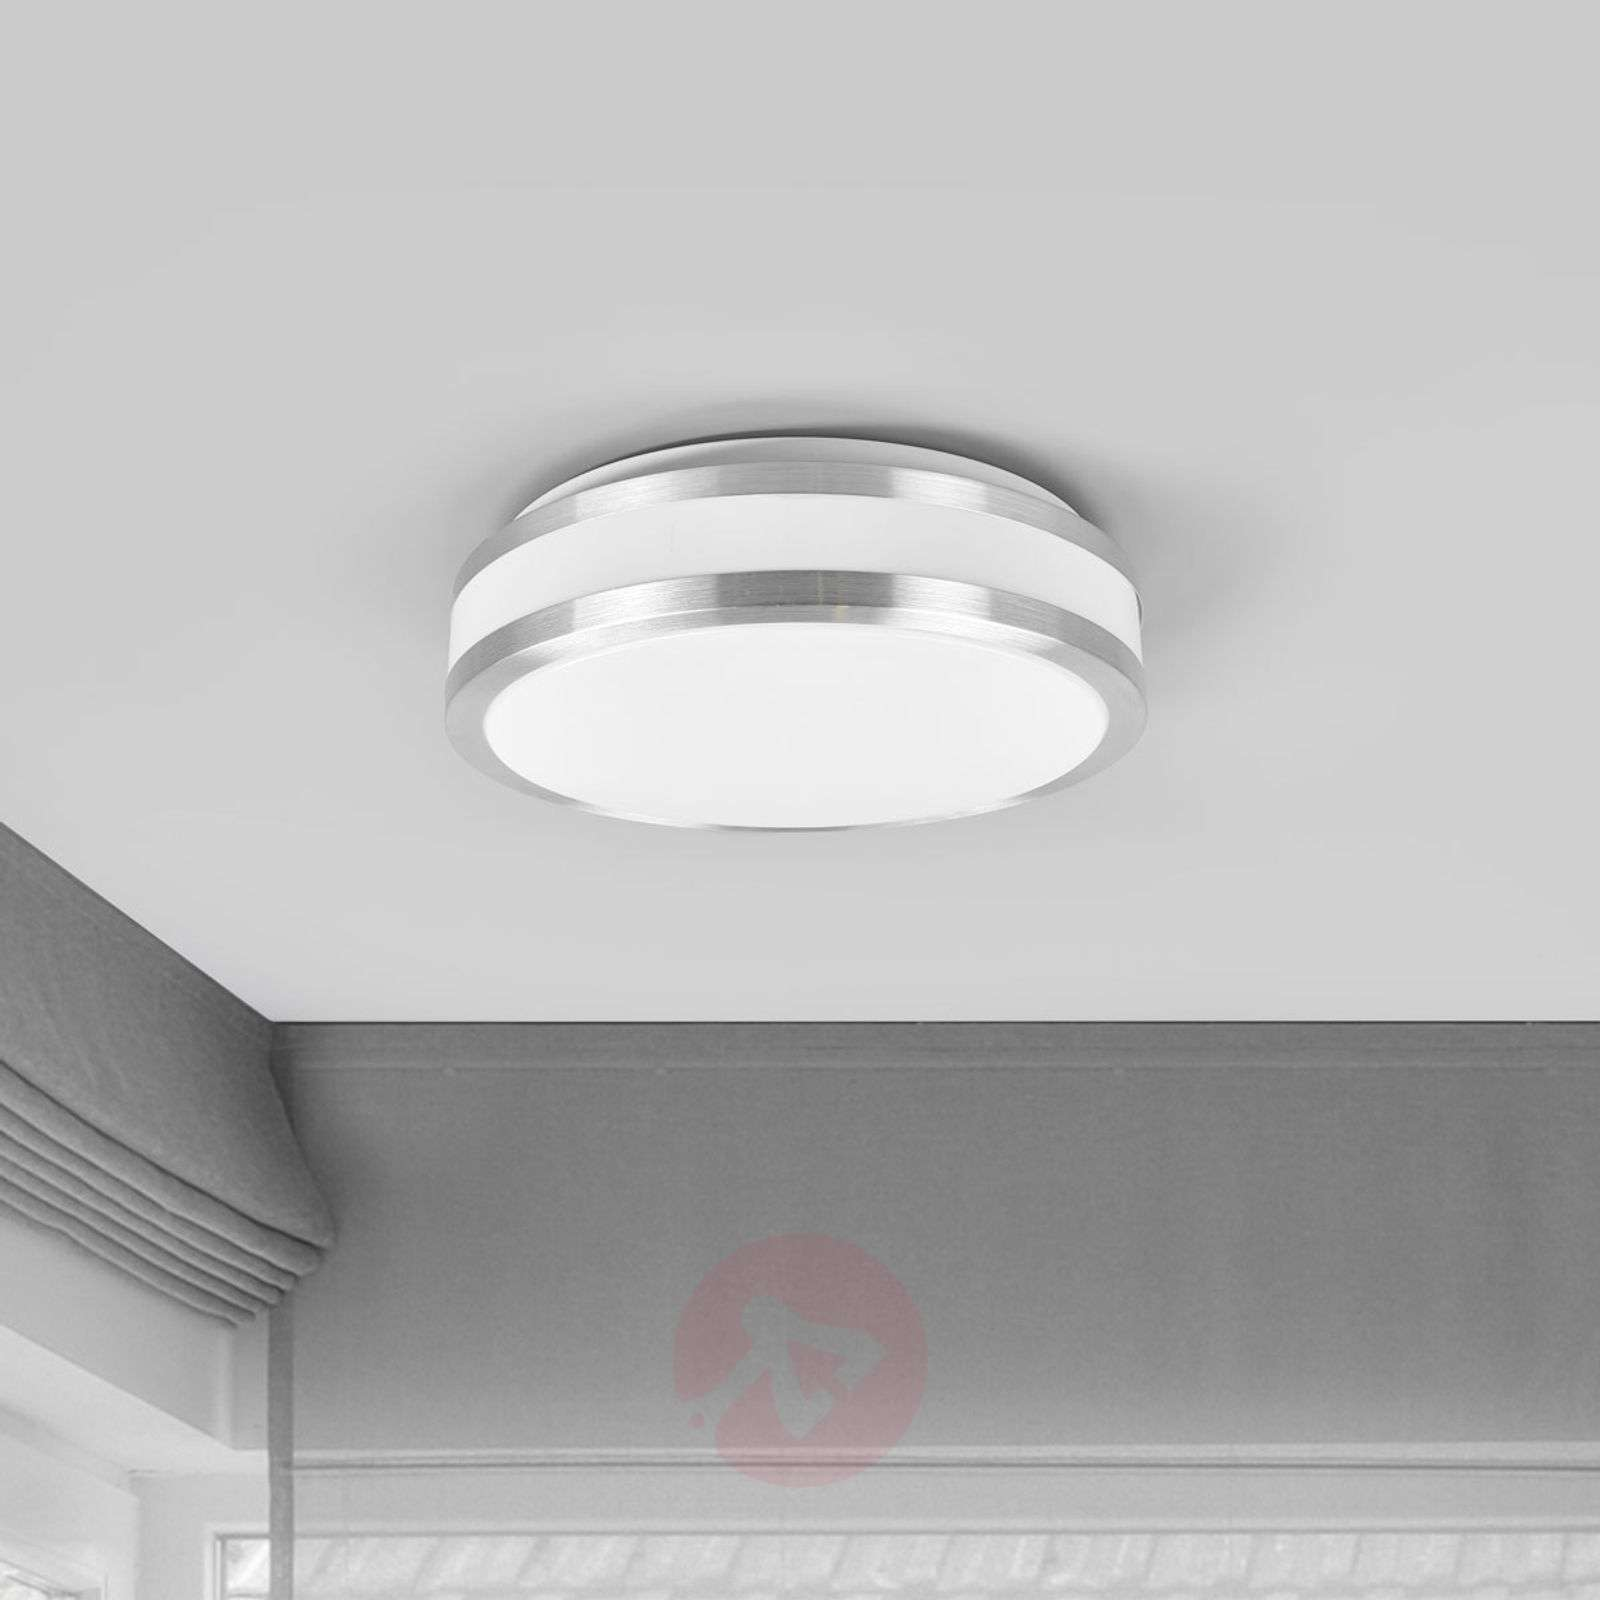 Simple LED ceiling light Edona, aluminium frame | Lights.co.uk